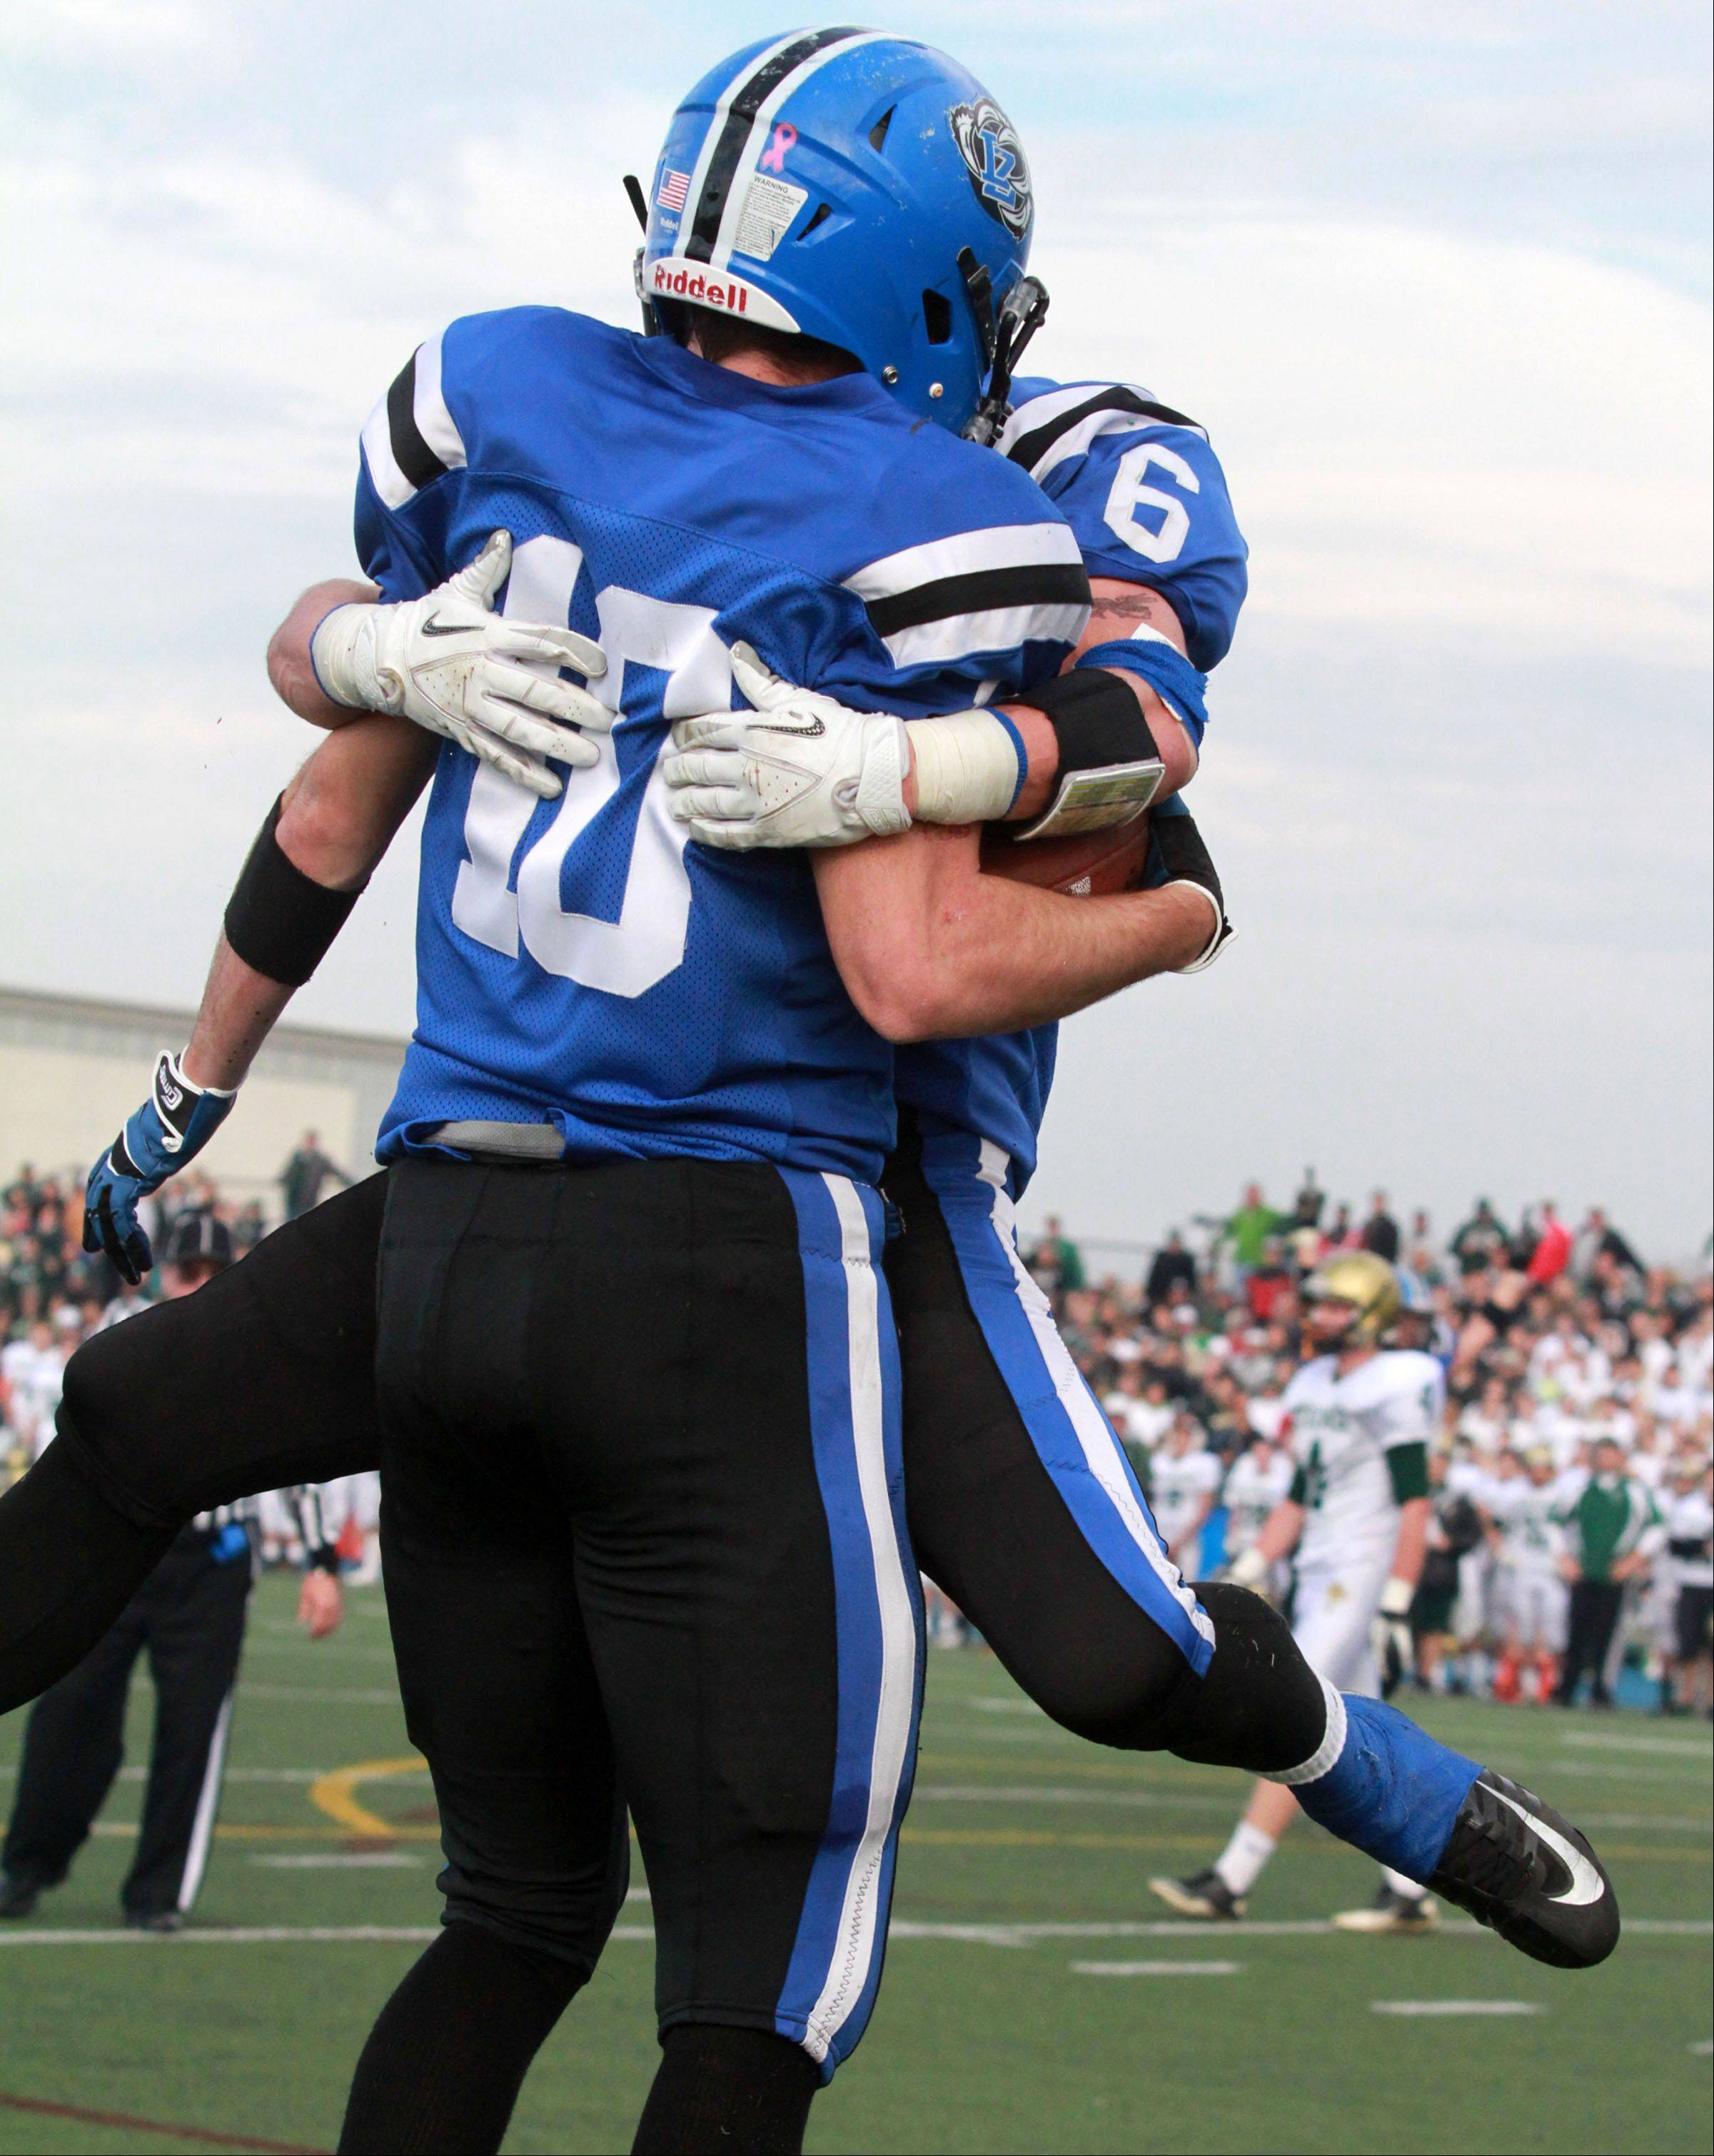 Lake Zurich's Sean Lynch leaps into the arms of Jake Stauner after Stauner caught a pass for a touchdown against Rockford Boylan in Class 7A state quarterfinal at Lake Zurich on Saturday.